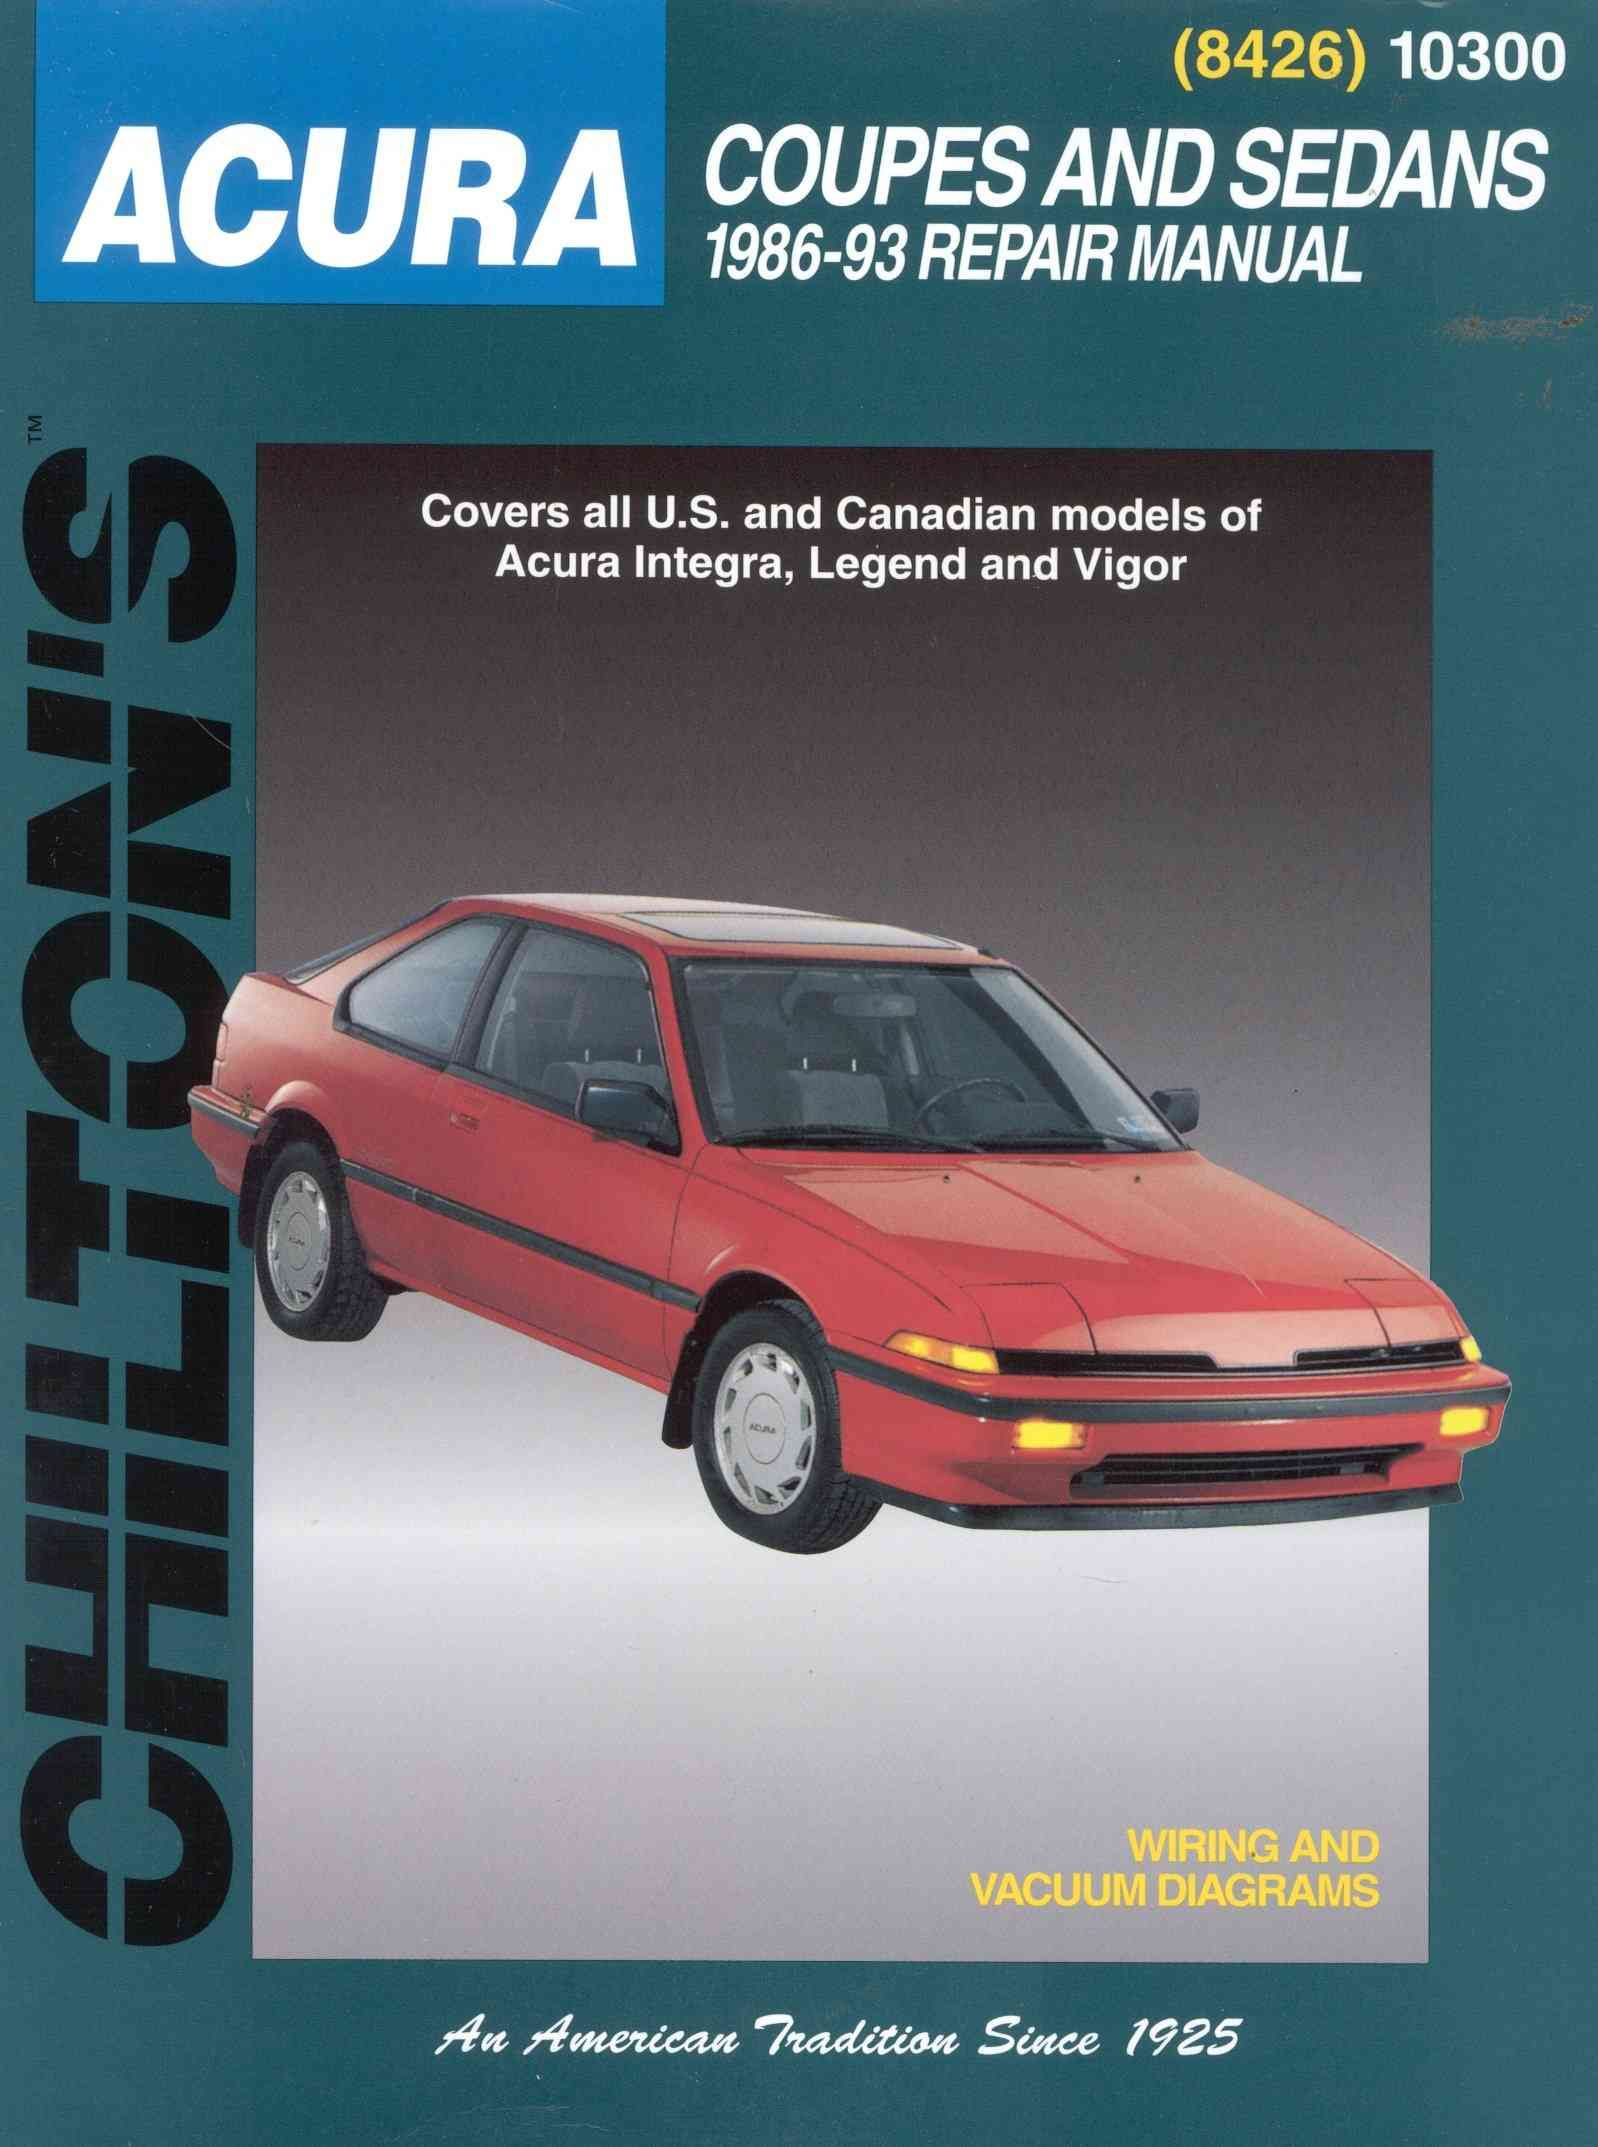 Chiltons acura coupes and sedans 1986 93 repair manual paperback precision series chiltons acura coupes and sedans 1986 93 repair manual fandeluxe Image collections